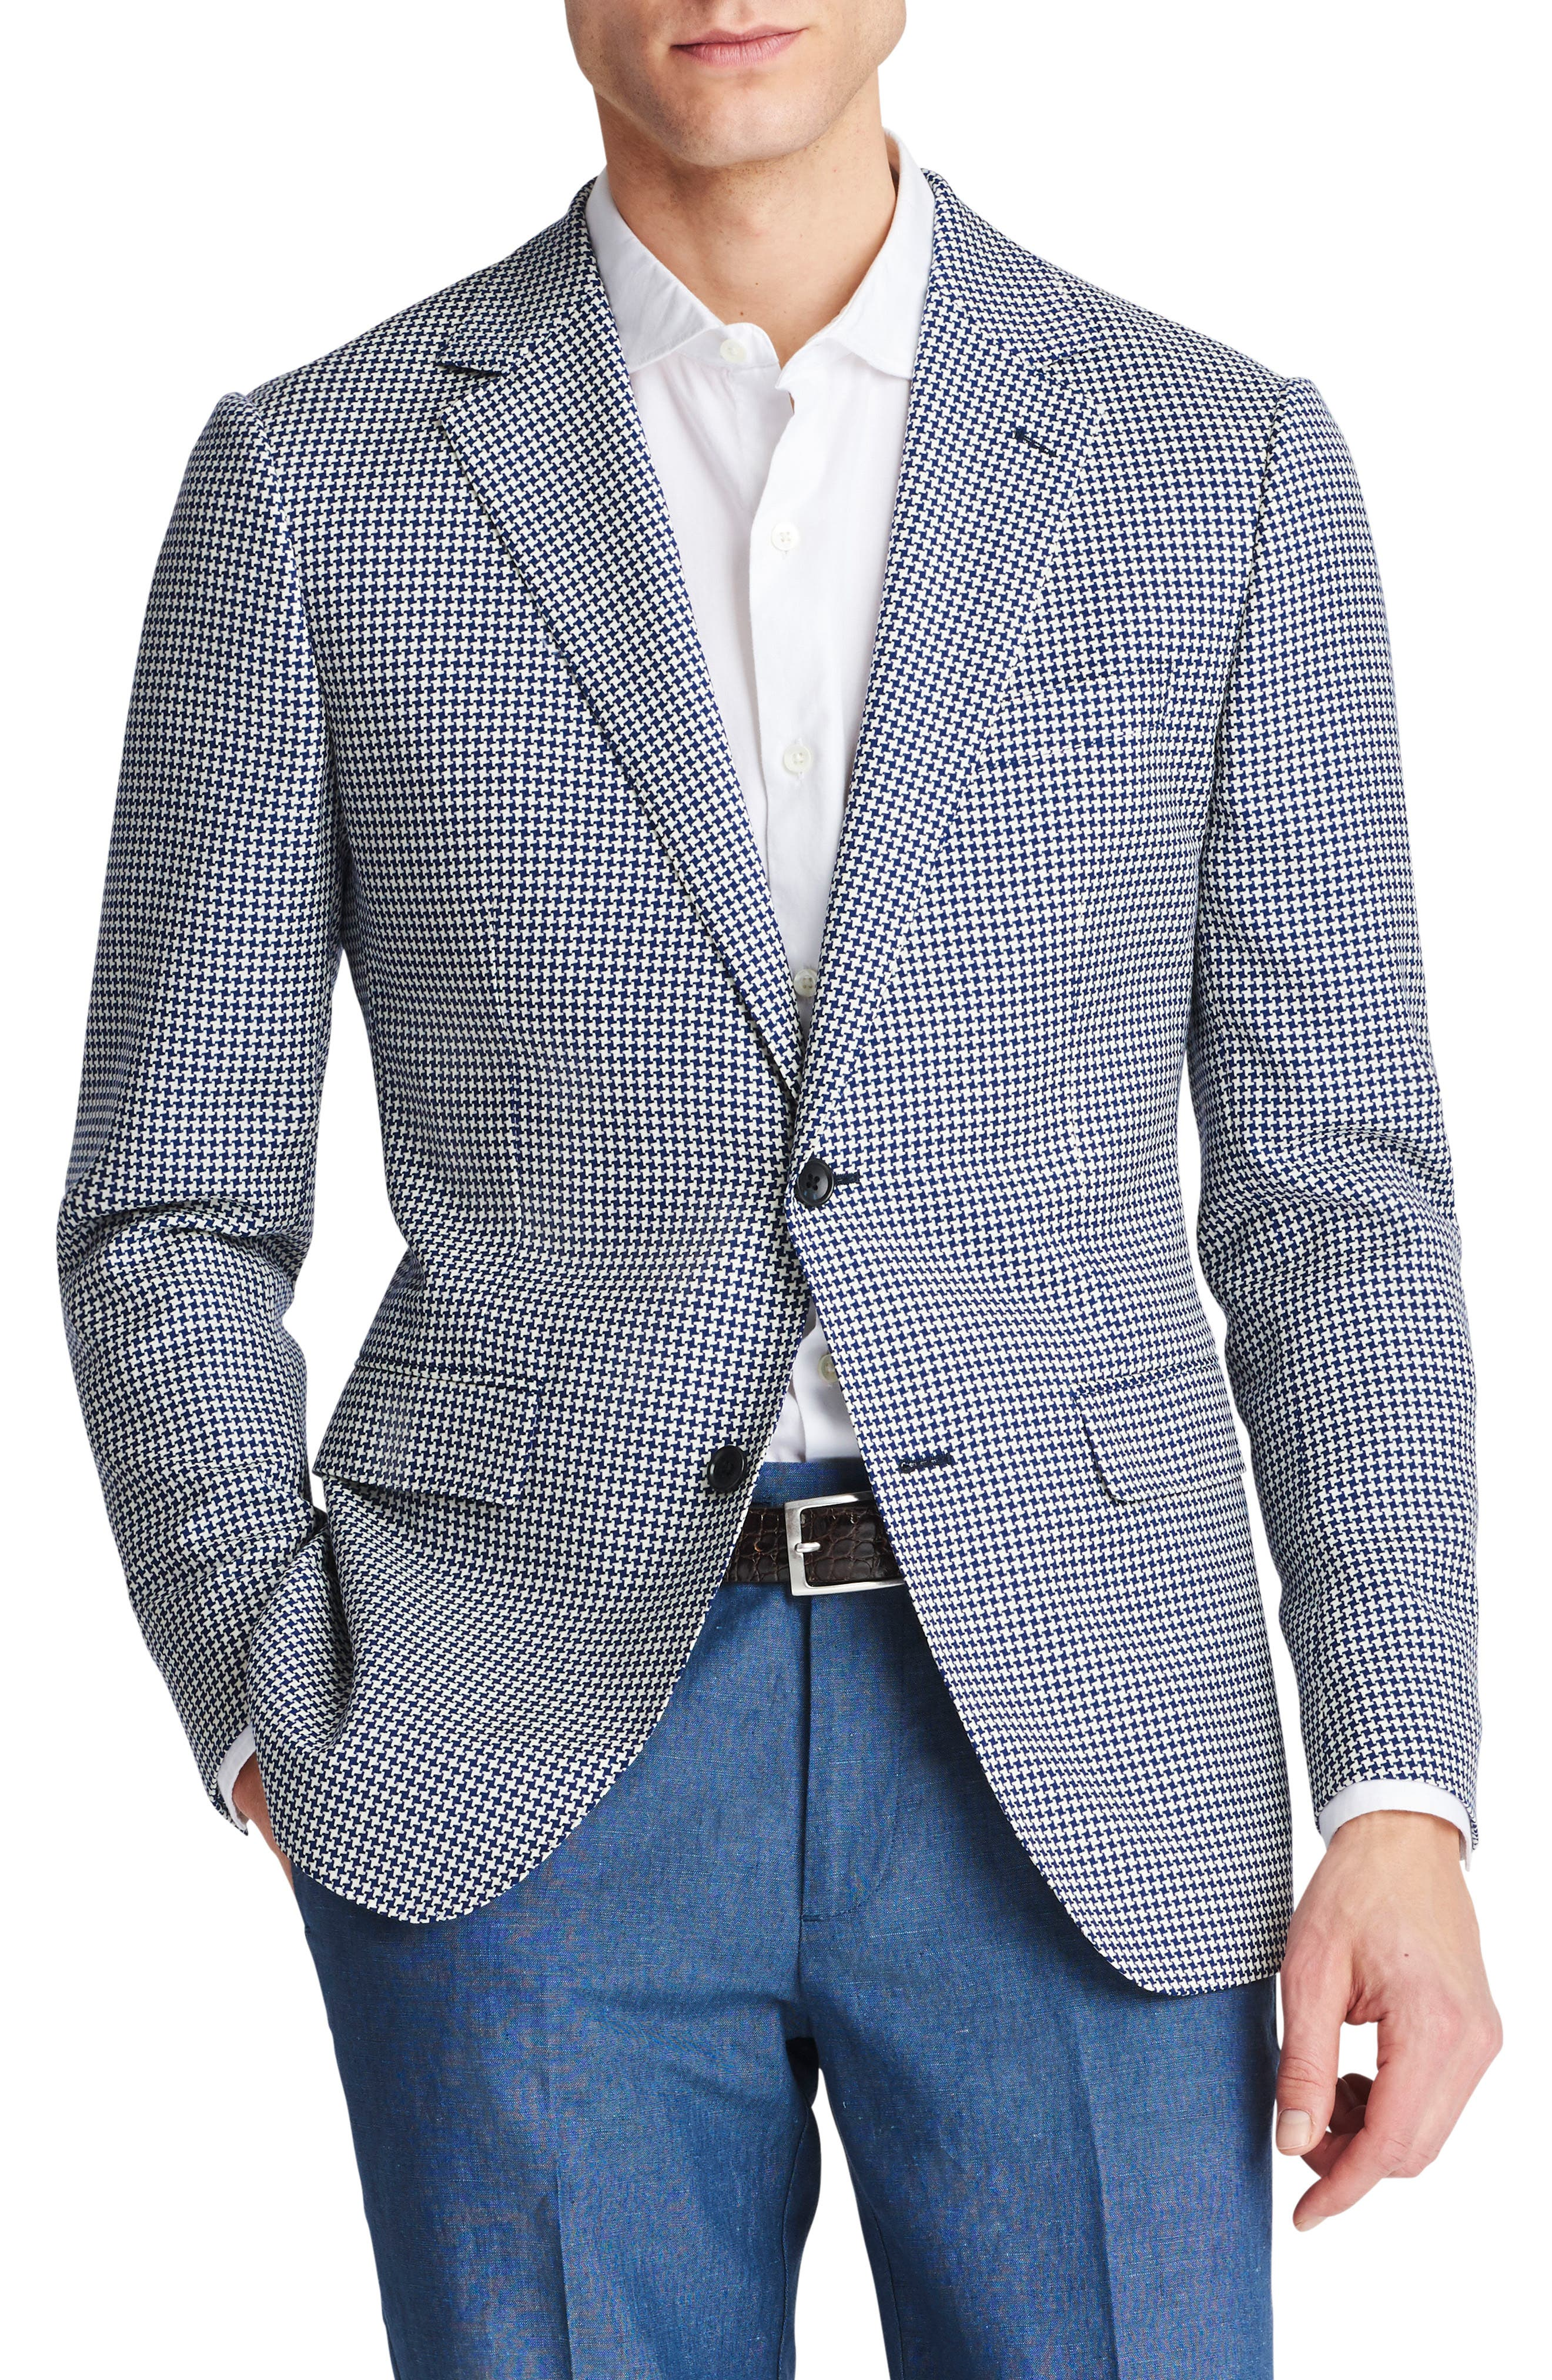 Capstone Slim Fit Houndstooth Wool Sport Coat,                             Main thumbnail 1, color,                             400